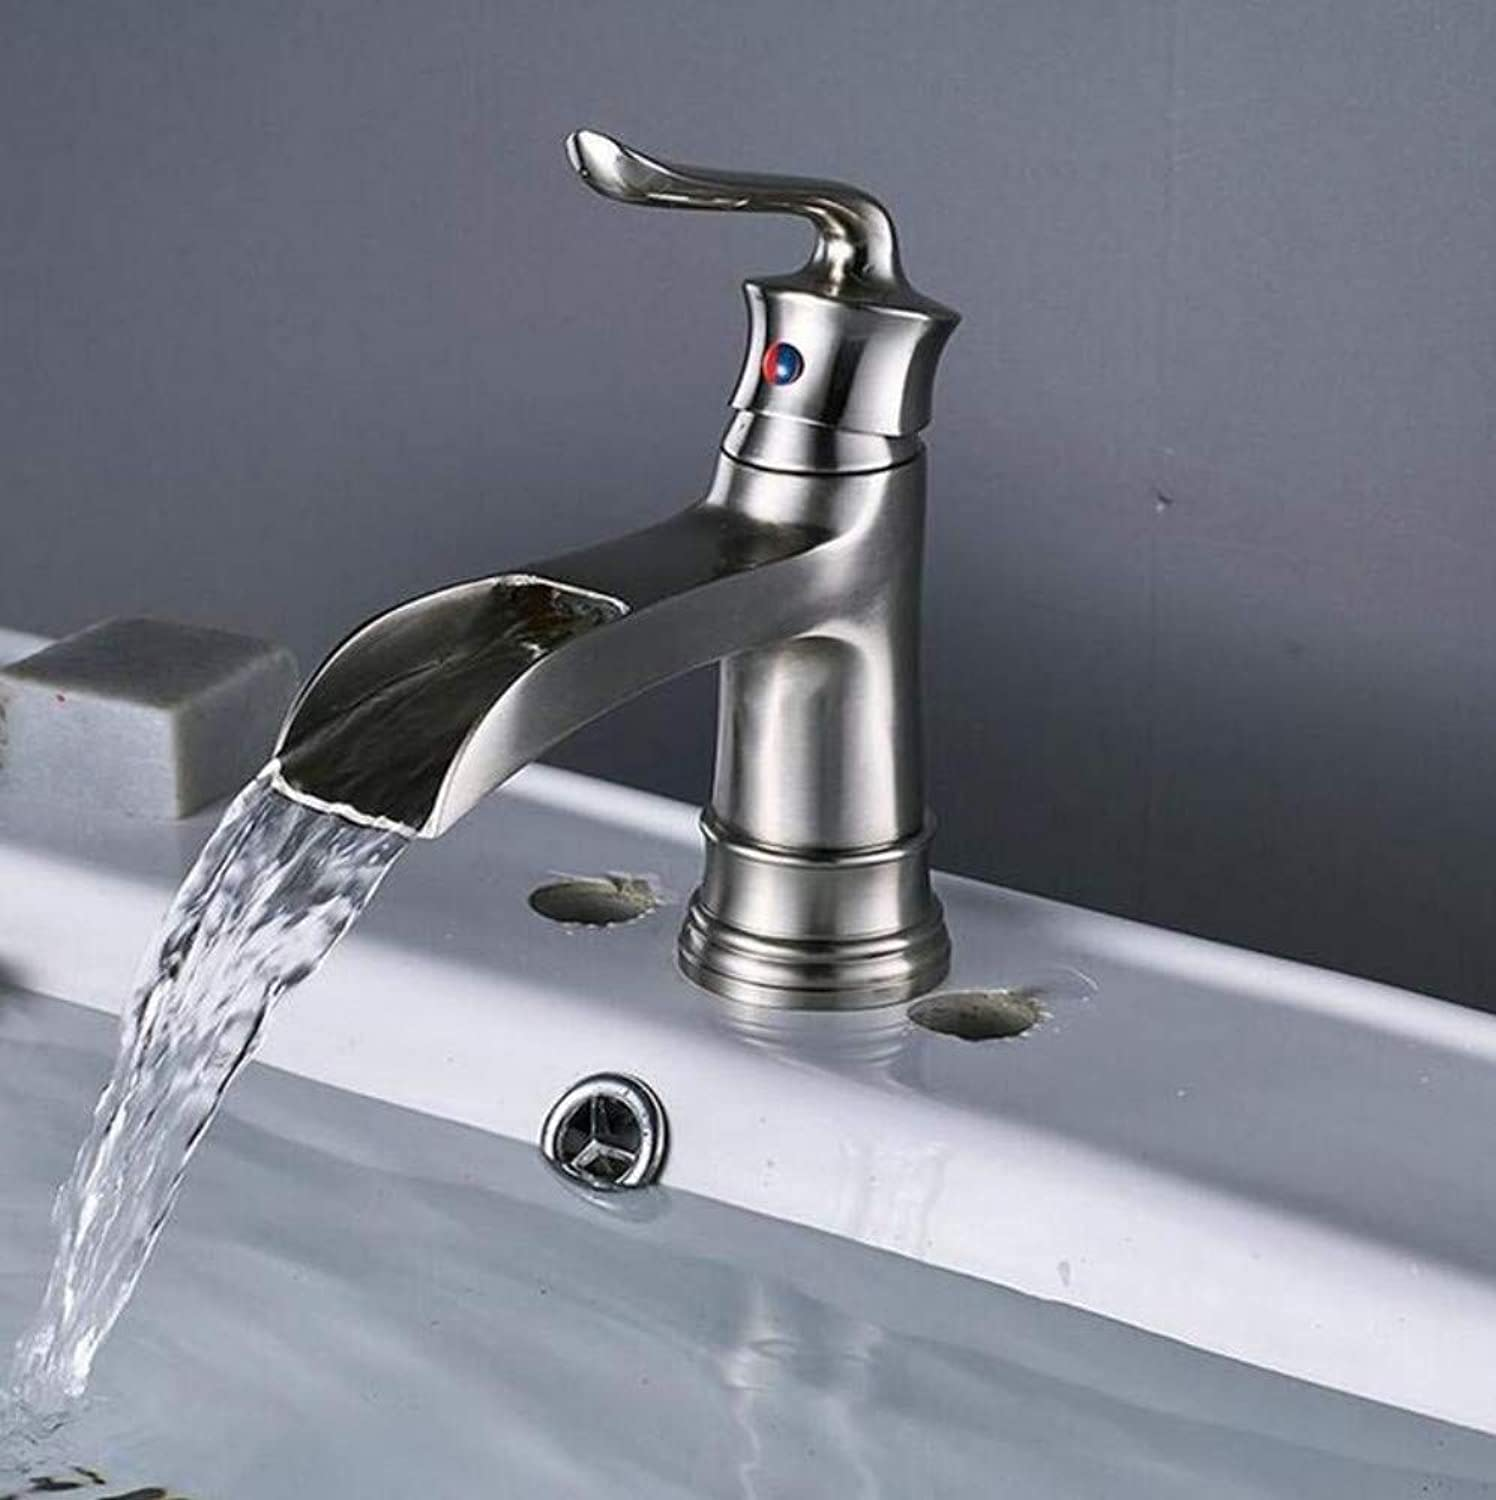 Brass Wall Faucet Chrome Brass Faucethot and Cold Water Mixer Faucet Without Cover 2 Available